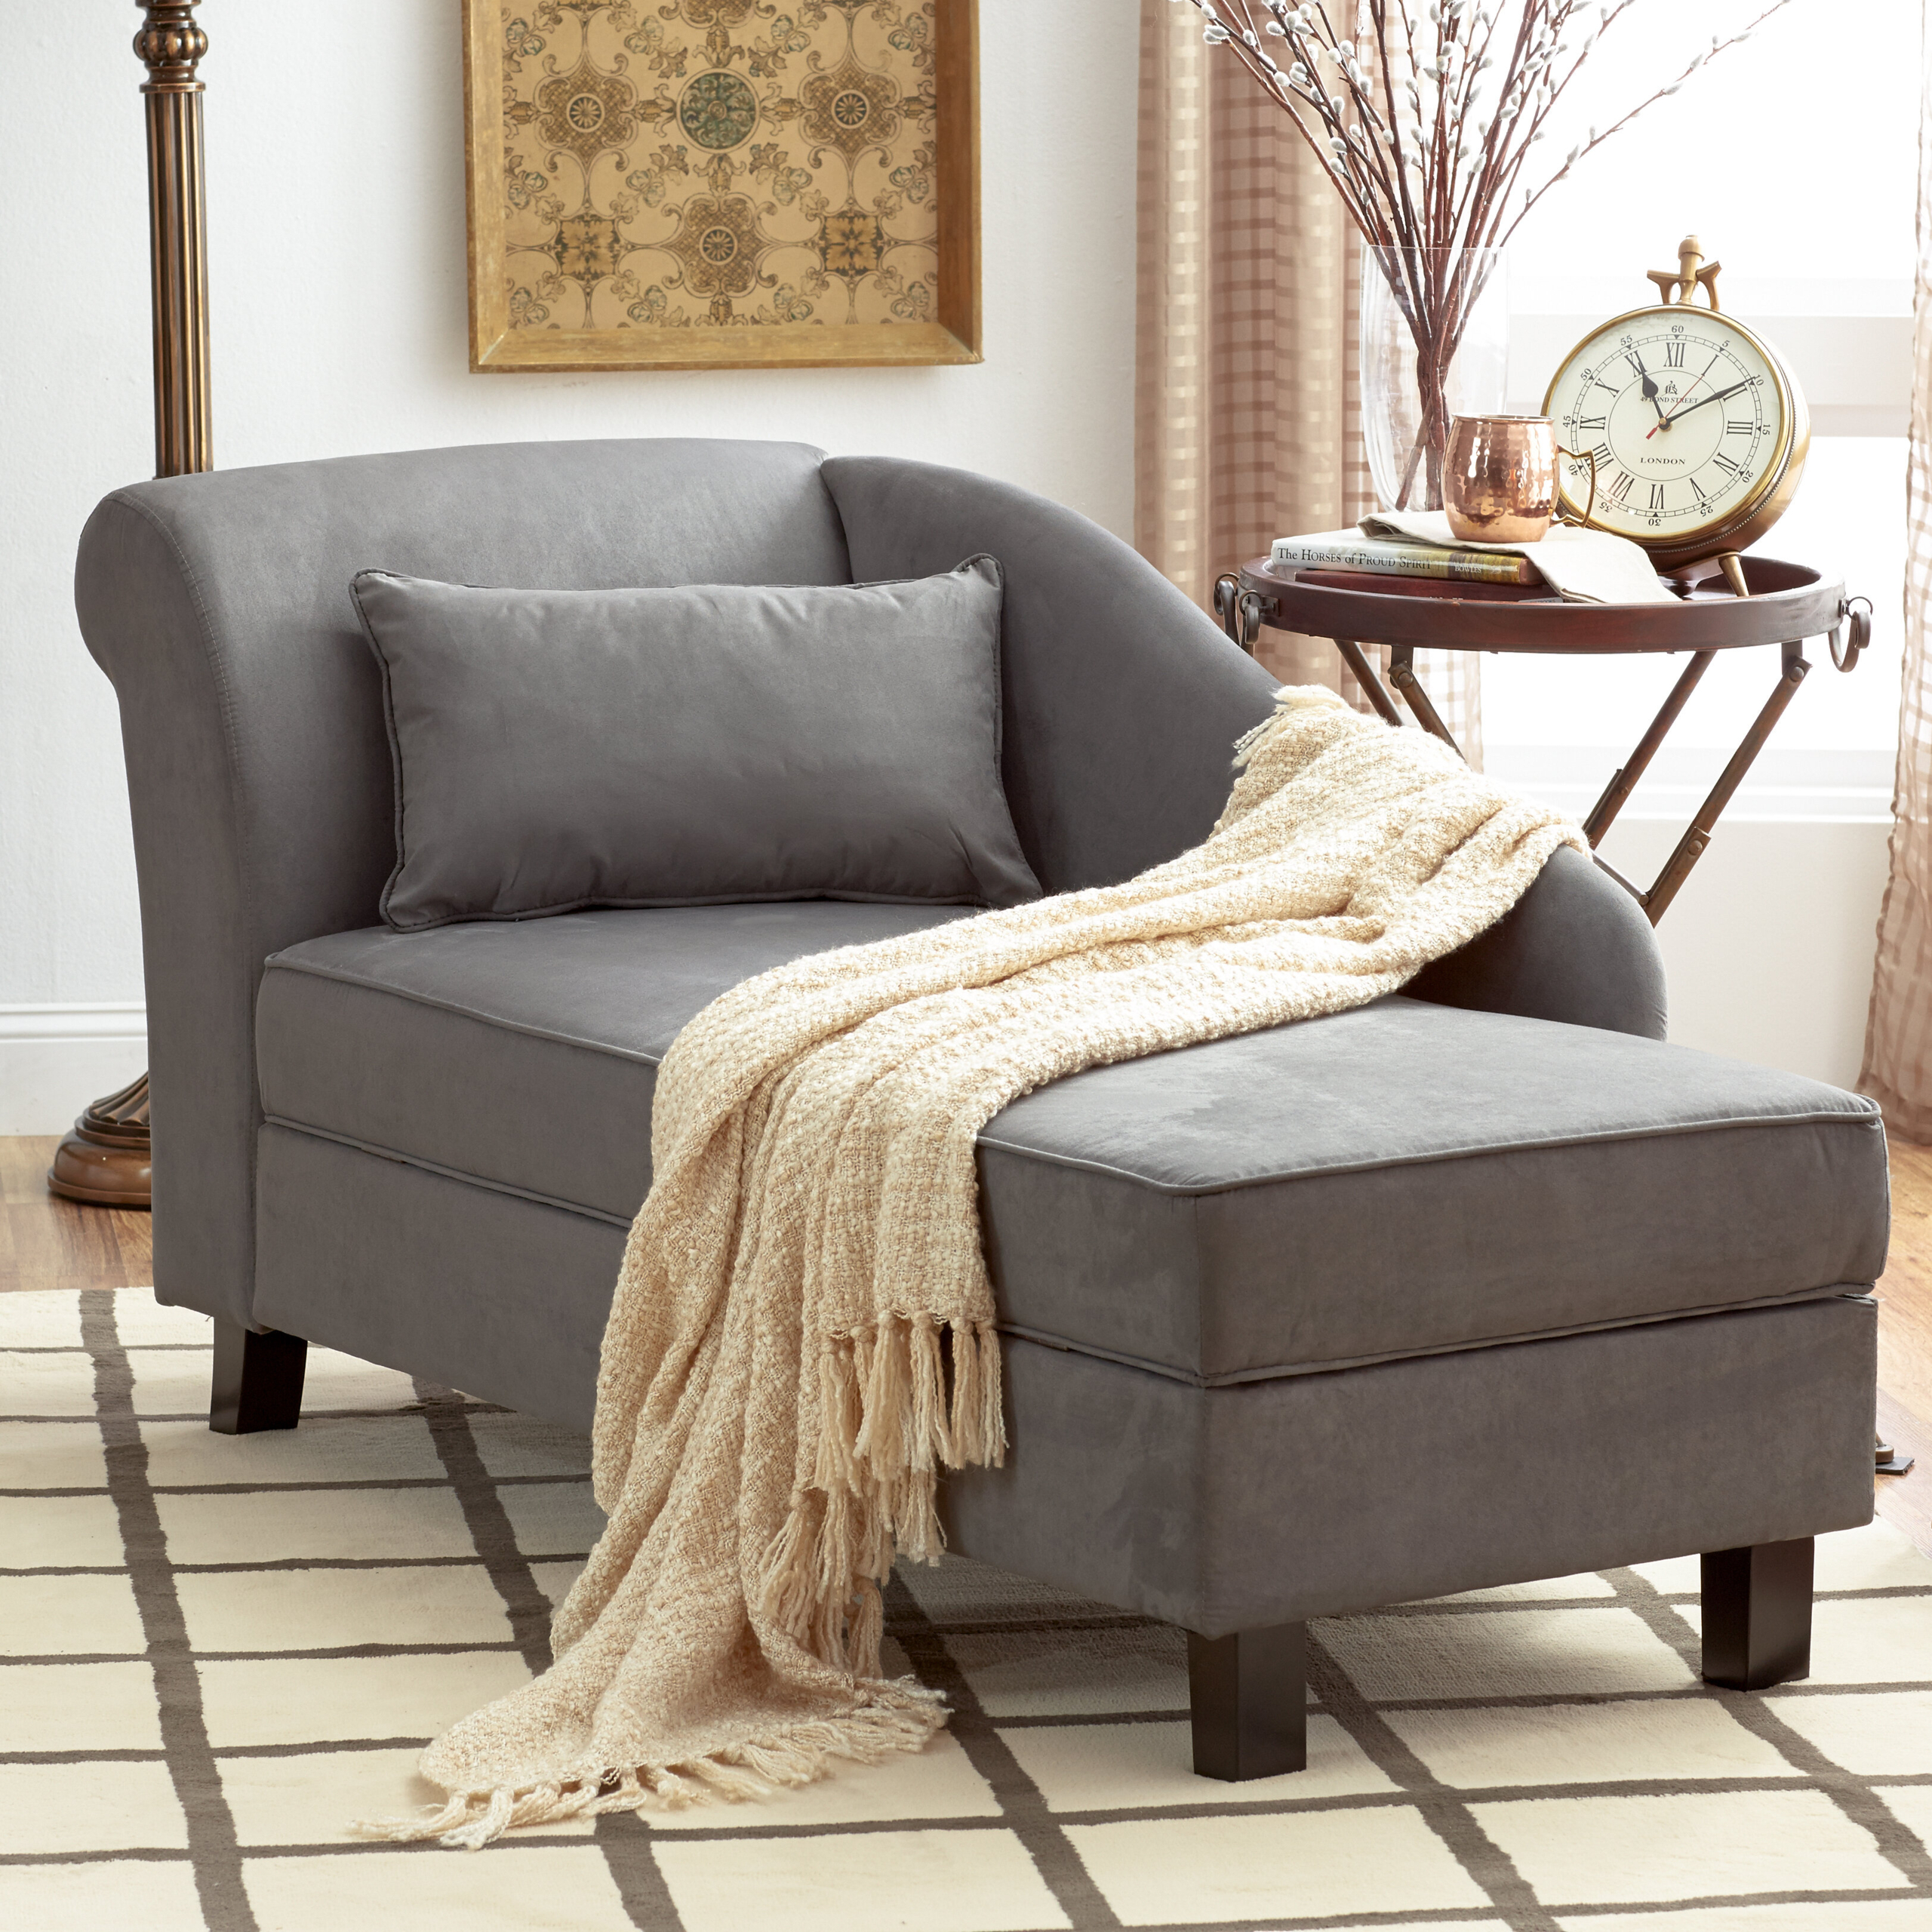 Lounging Chairs For Living Room Off 59, Lounge Chairs For Living Room